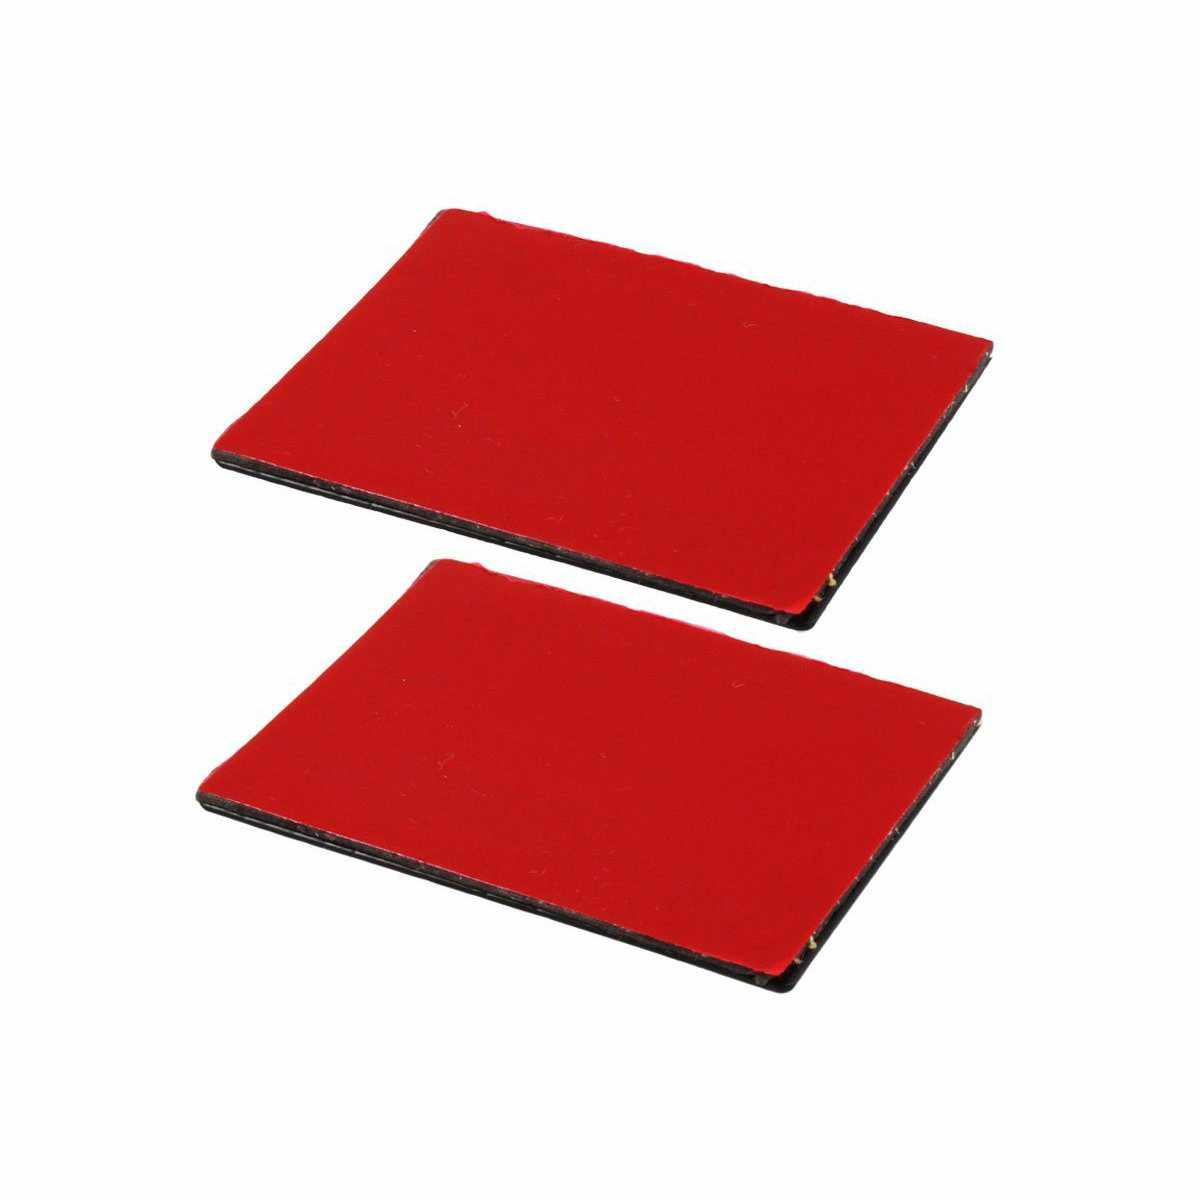 RAM Large Metal Adhesive Plate (RAP-300-1SU) - Modest Mounts